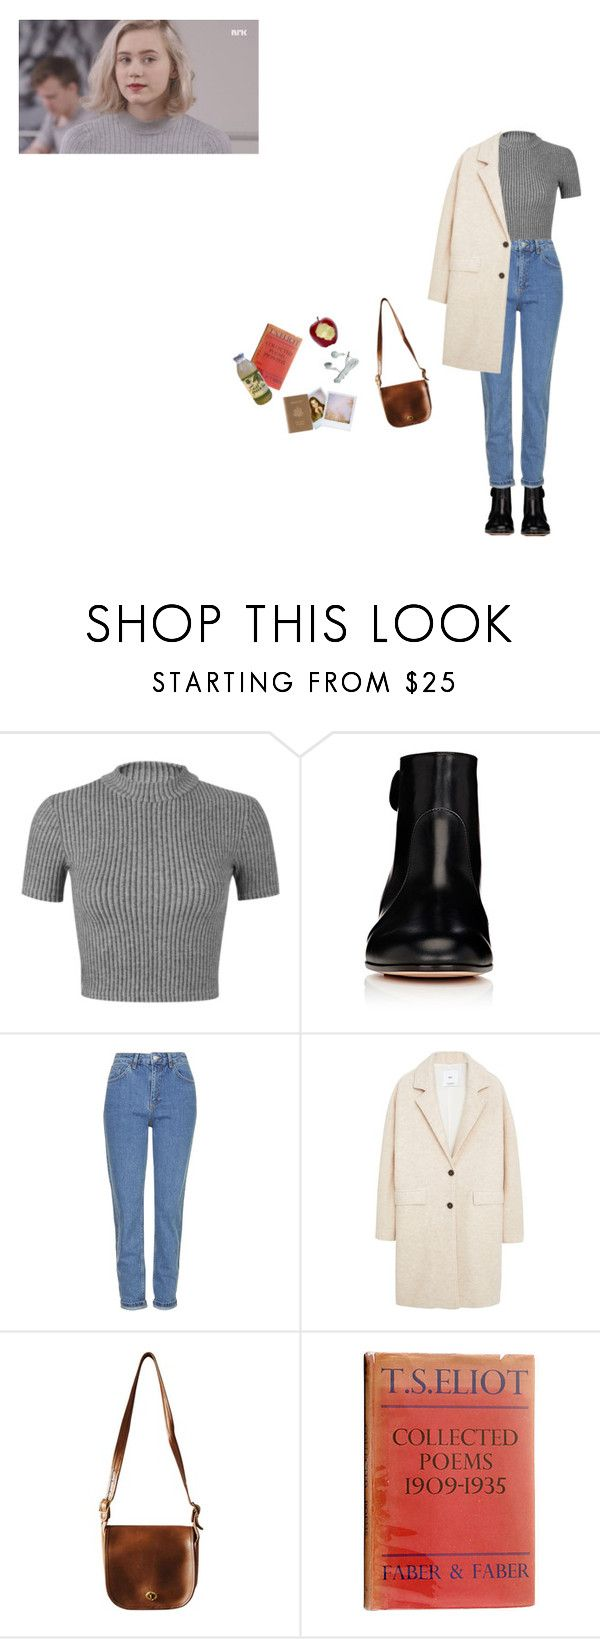 """Noora - SKAM"" by vuesurciel ❤ liked on Polyvore featuring Miss Selfridge, Gianvito Rossi, Topshop, MANGO, Polaroid, Royce Leather, nura, noora and skam"